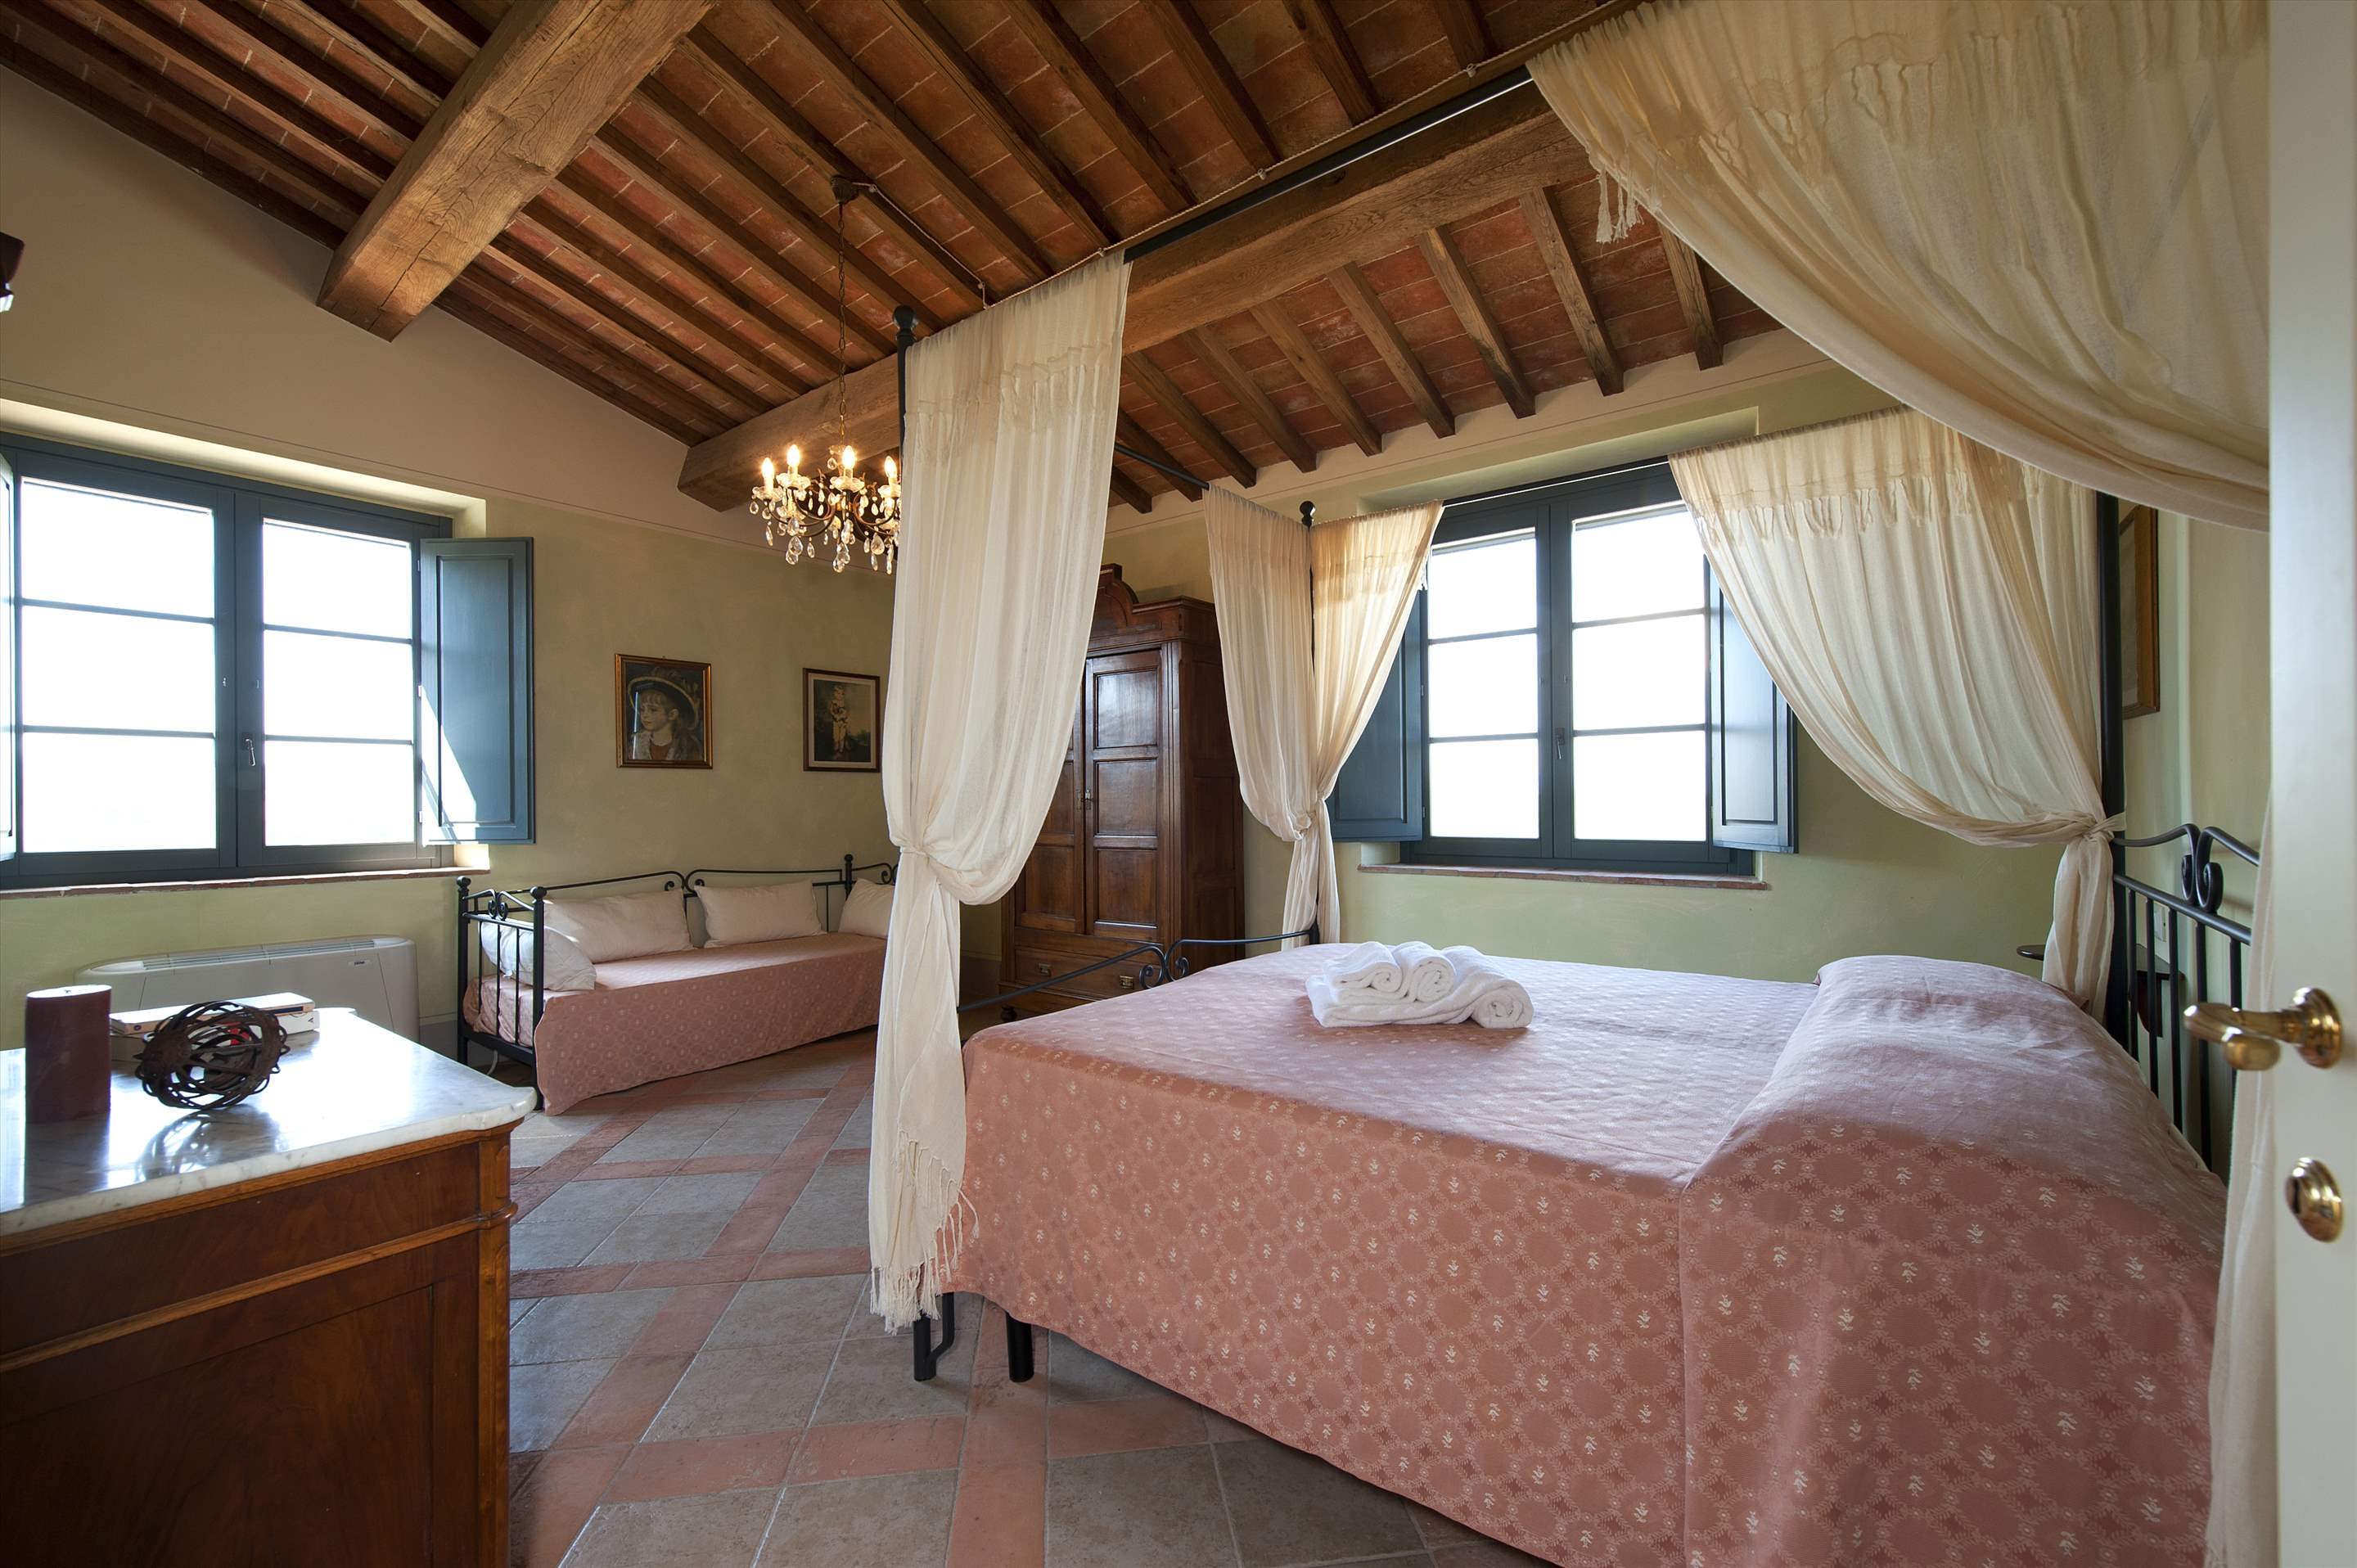 Podere Casacce, Ground Floor, 4 bedroom villa in Tuscany Coast, Tuscany Photo #27